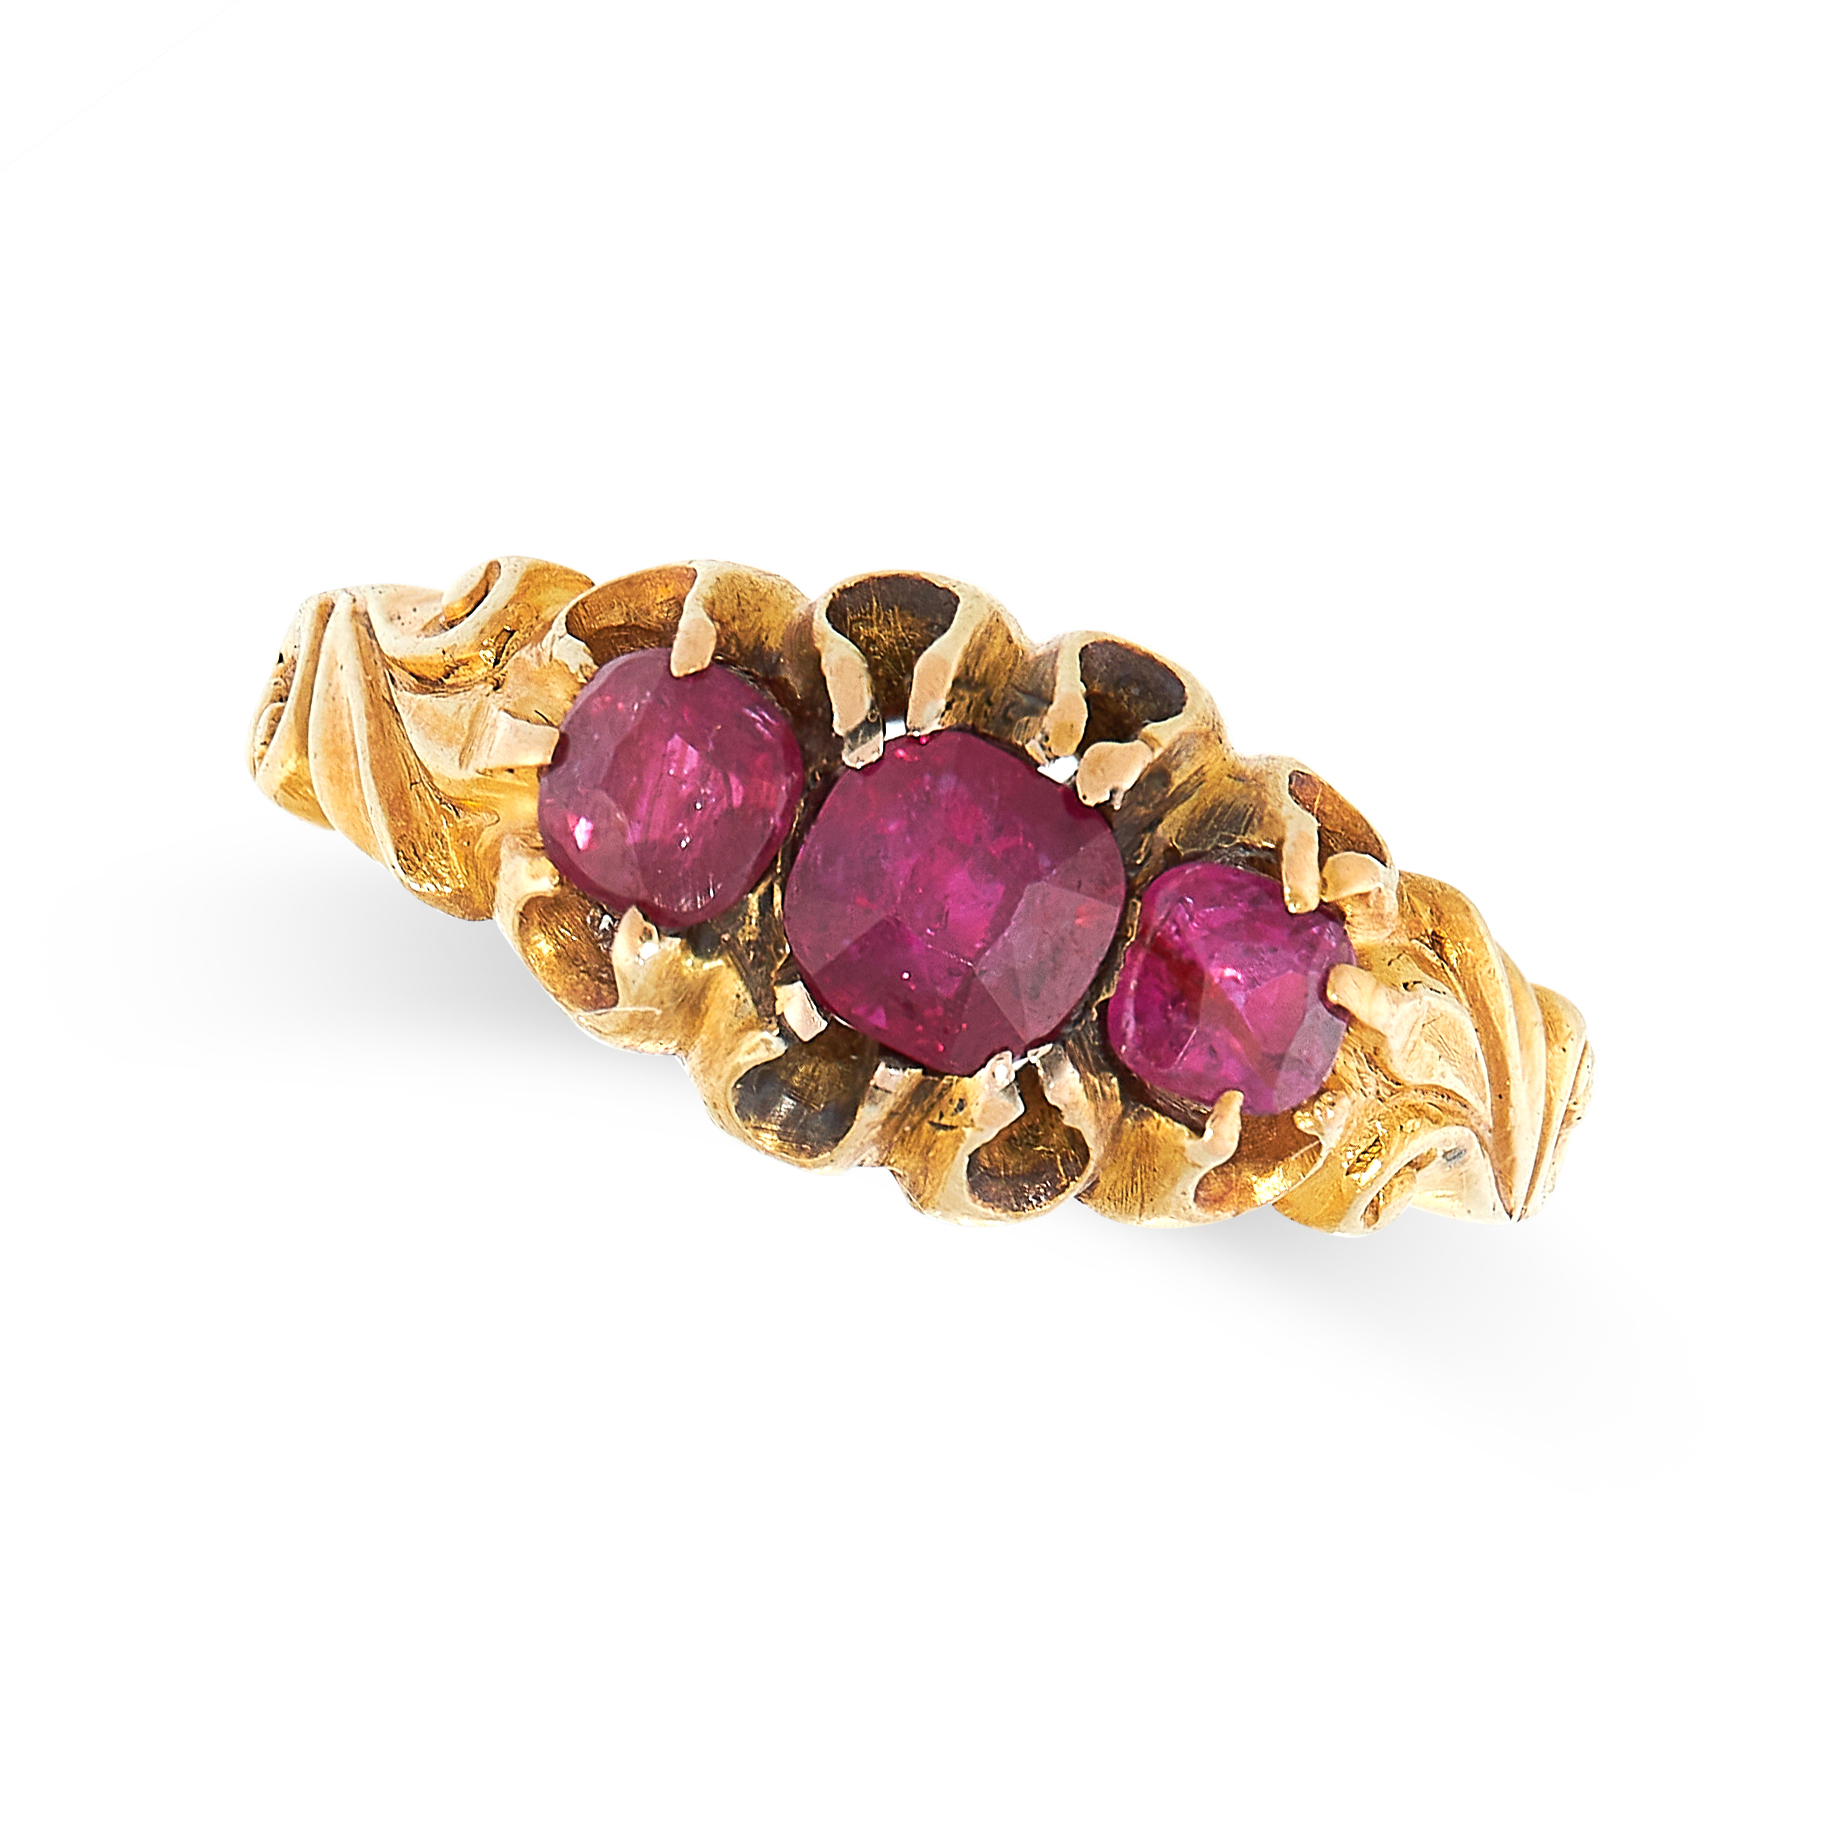 ANTIQUE RUBY RING in yellow gold, set with three graduated cushion cut rubies, unmarked, size N /